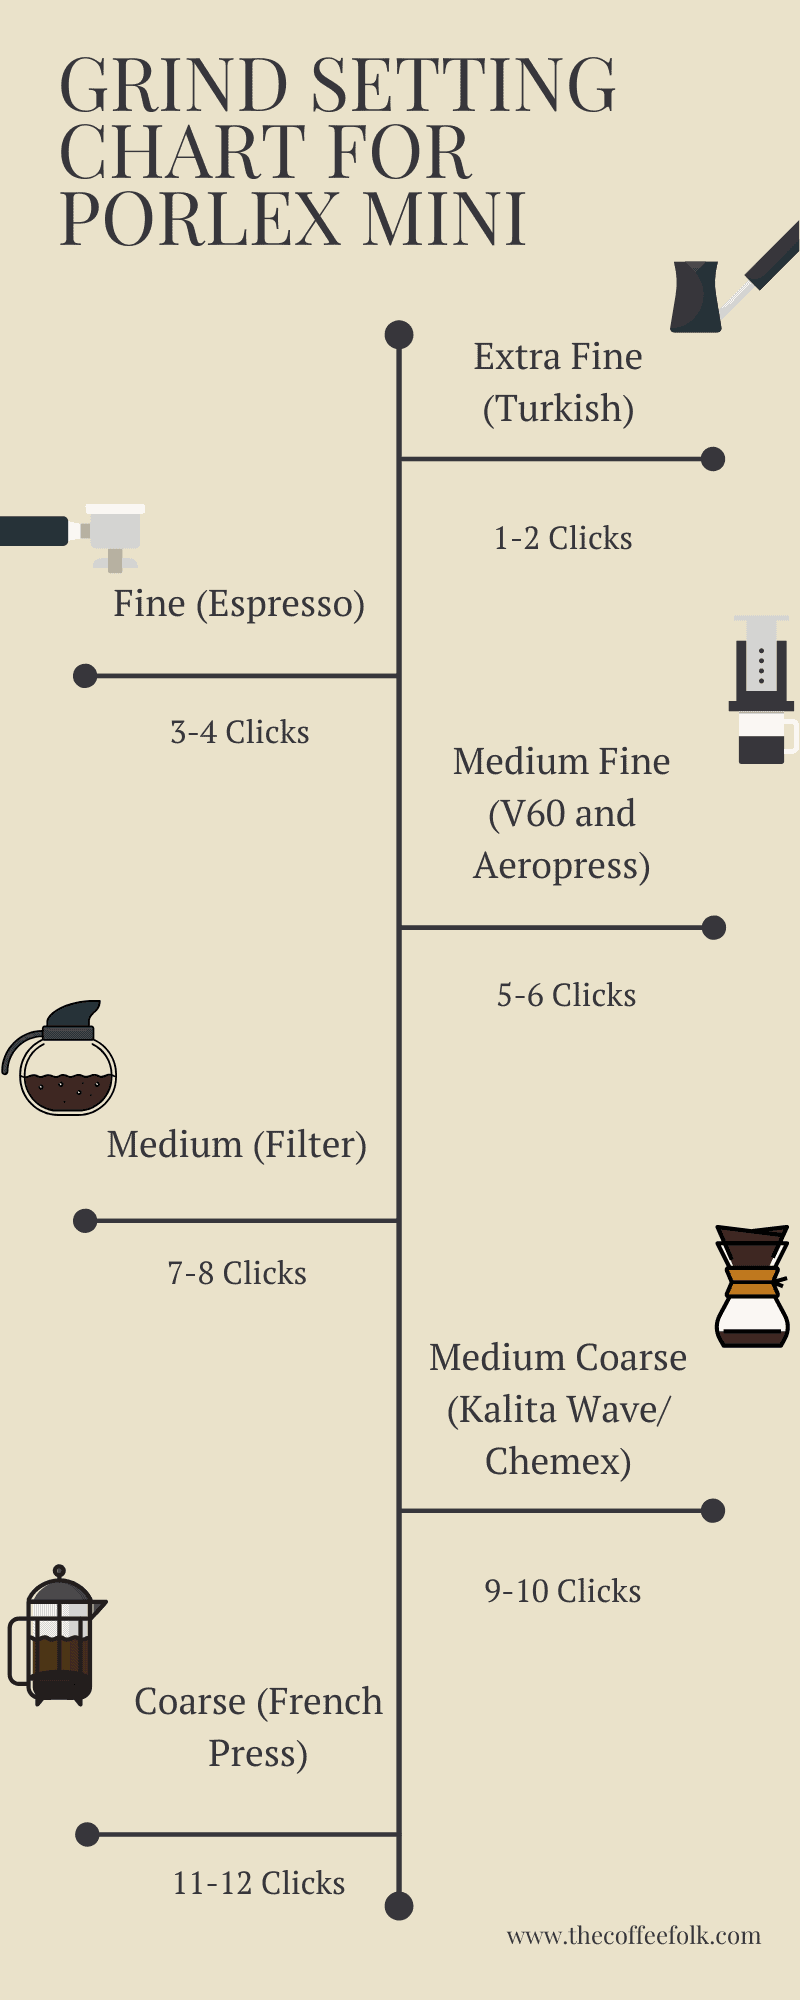 Diagram of what grind settings to use on Porlex Mini for Aeropress, V60, Filter, Chemex and French Press Coffee